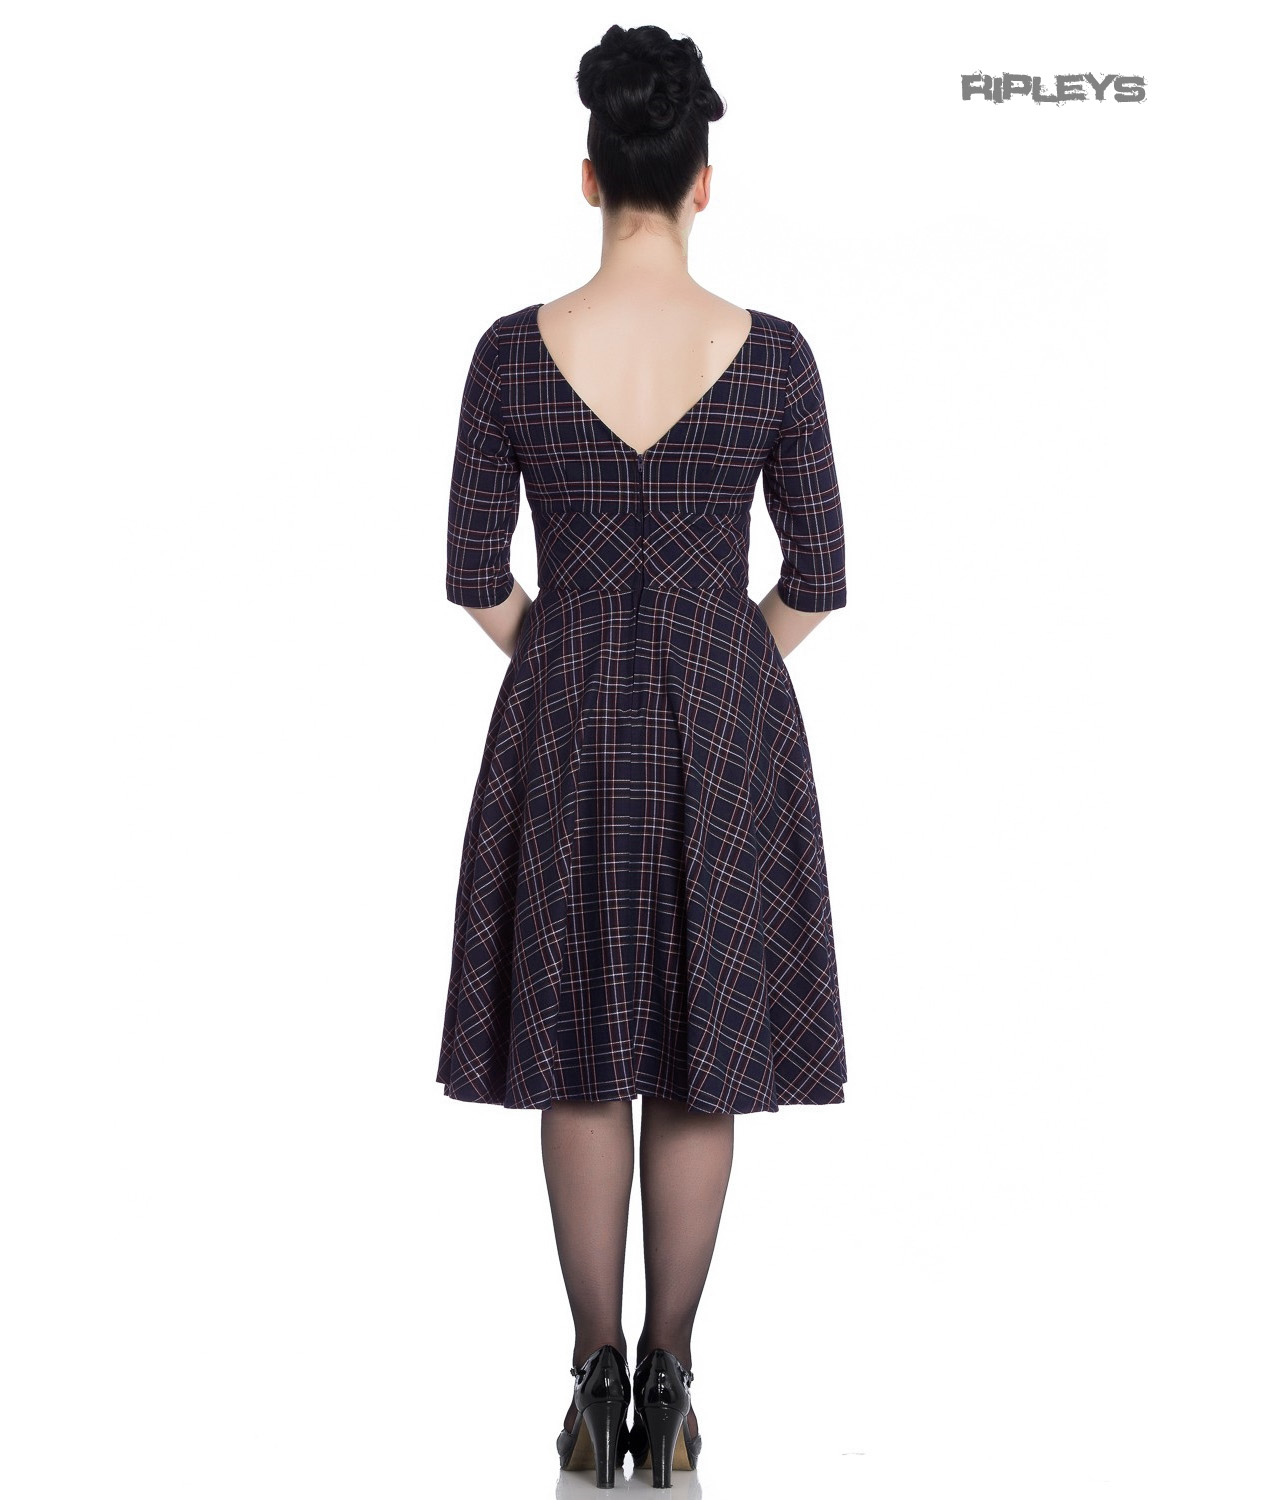 Hell Bunny 40s 50s Pin Up Wartime Dress Peebles NAVY Blue Tartan All Sizes